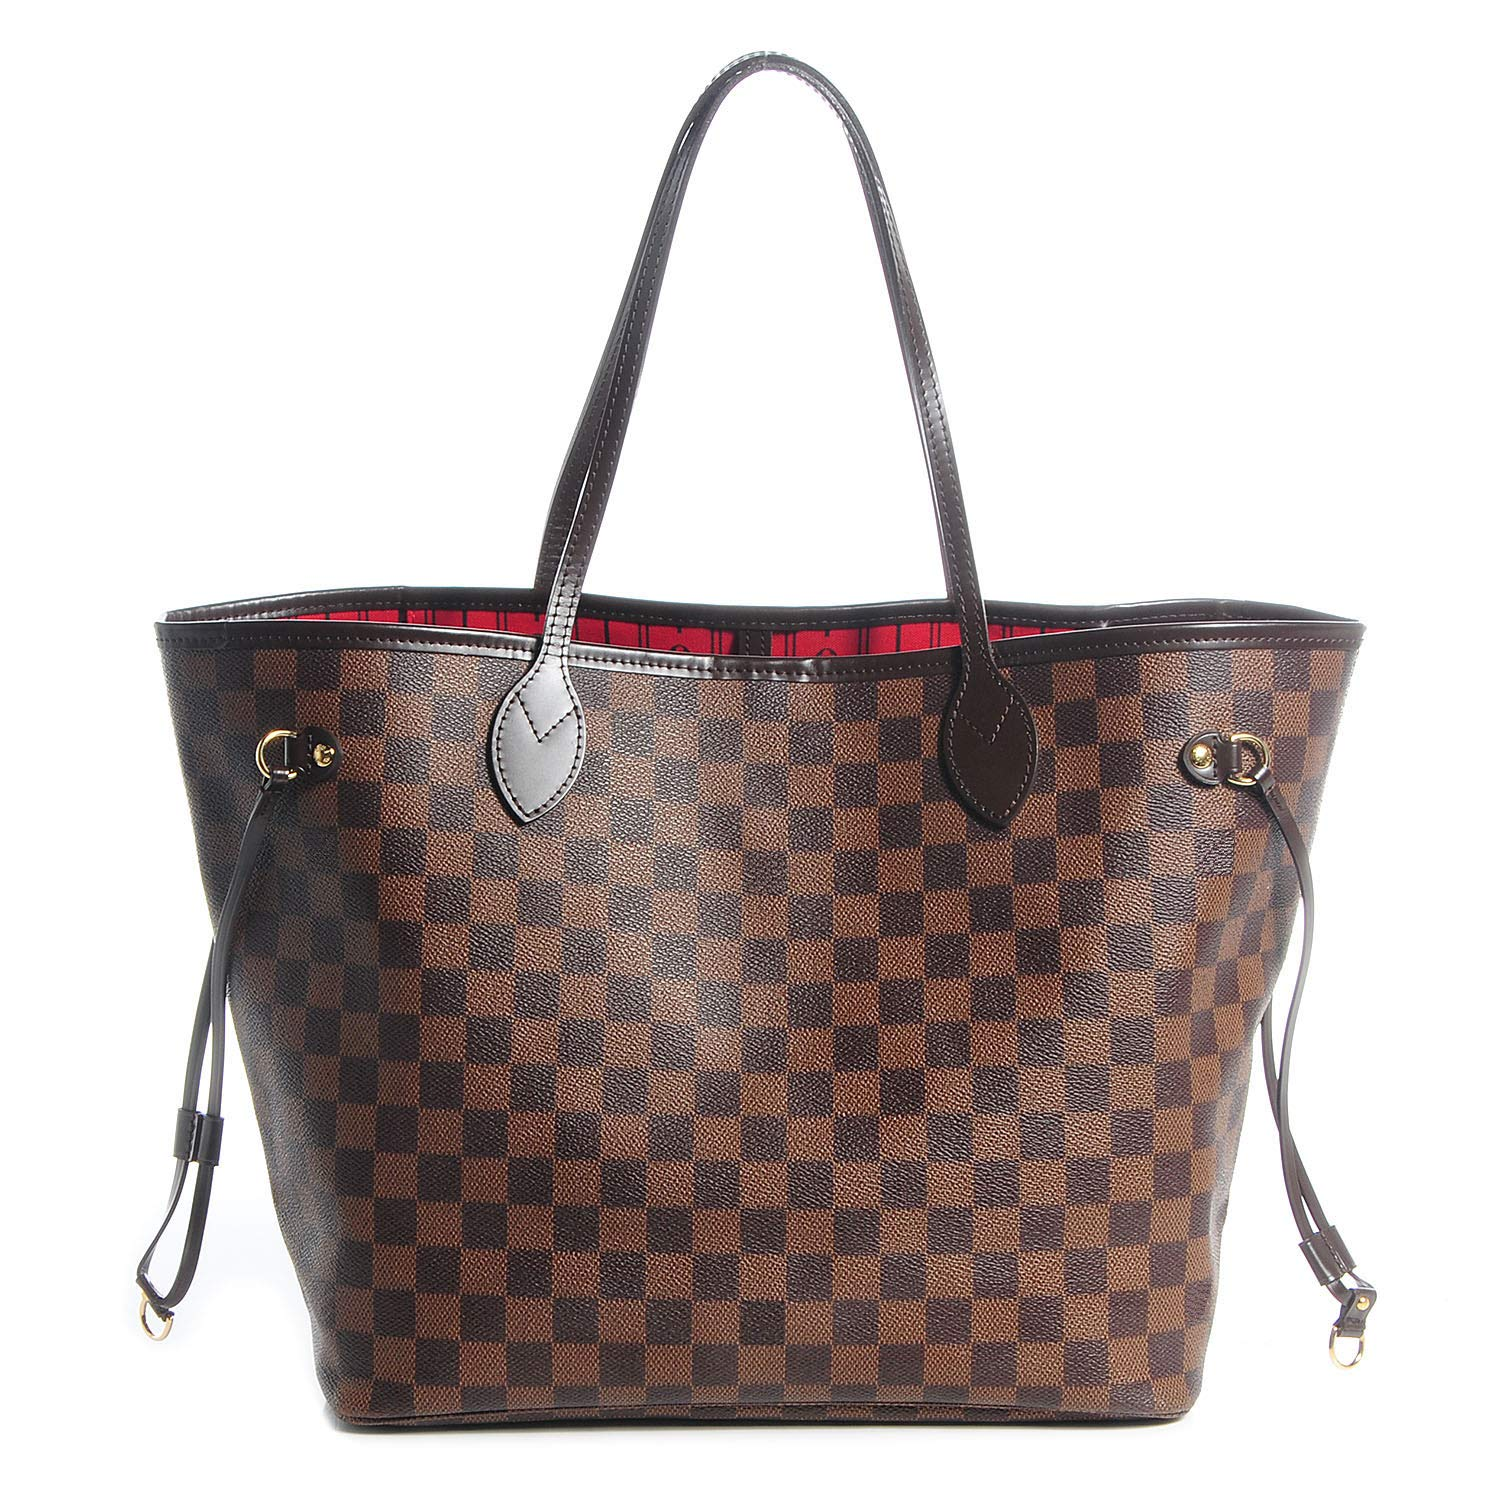 V Style Bags Women Handbag Tote MM Shoulder Bag Organizer made of Canvas Size 12.6 x 11.4 x 6.7 inches by Unknown Binding (Image #1)